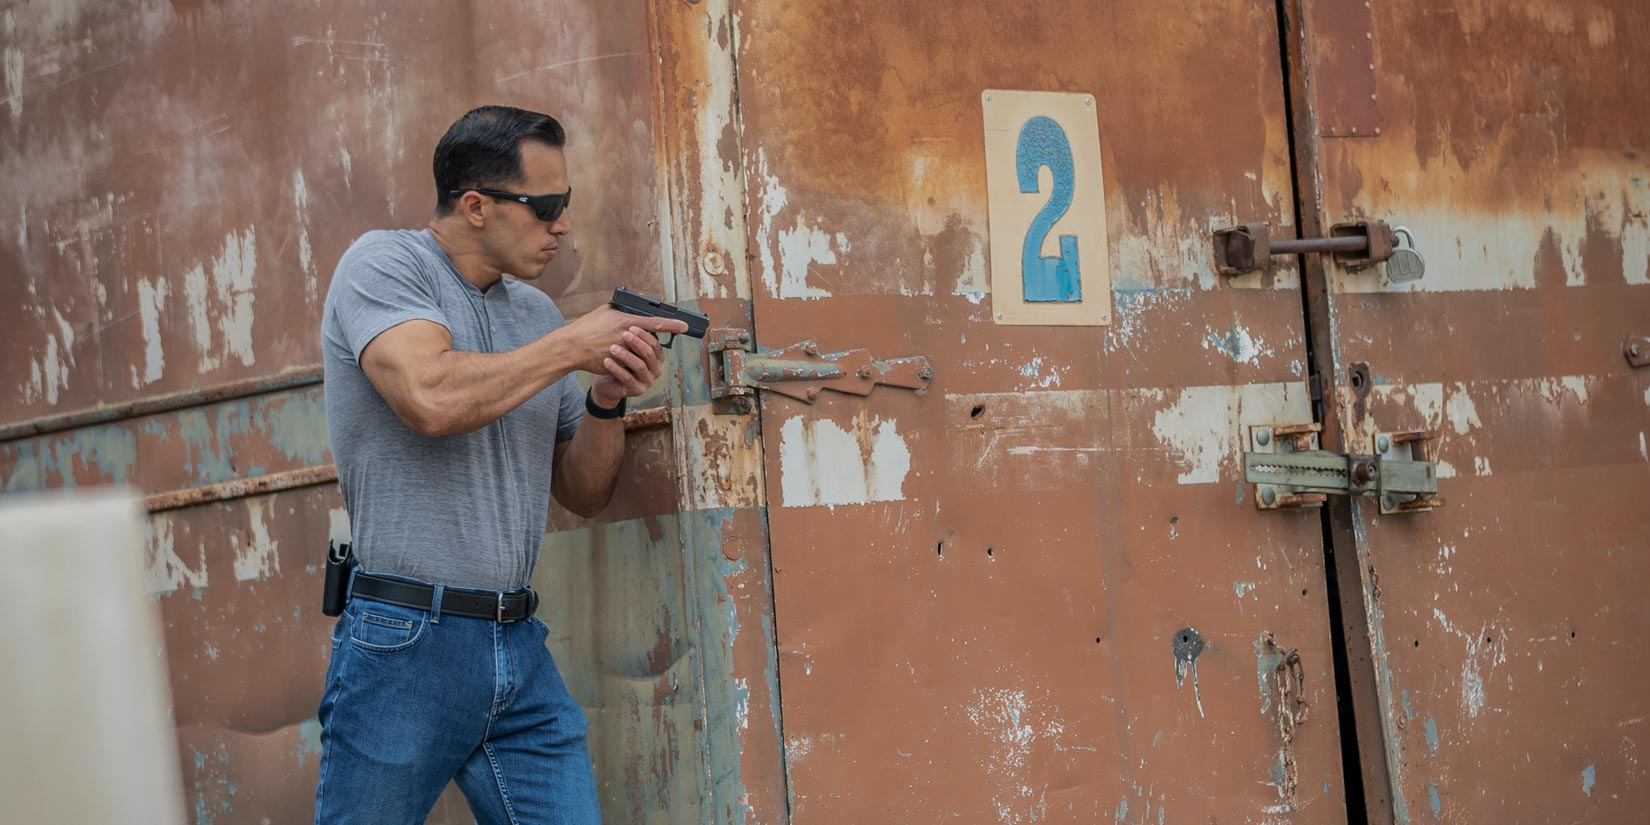 Man next to rusty shipping container with a Safariland holster